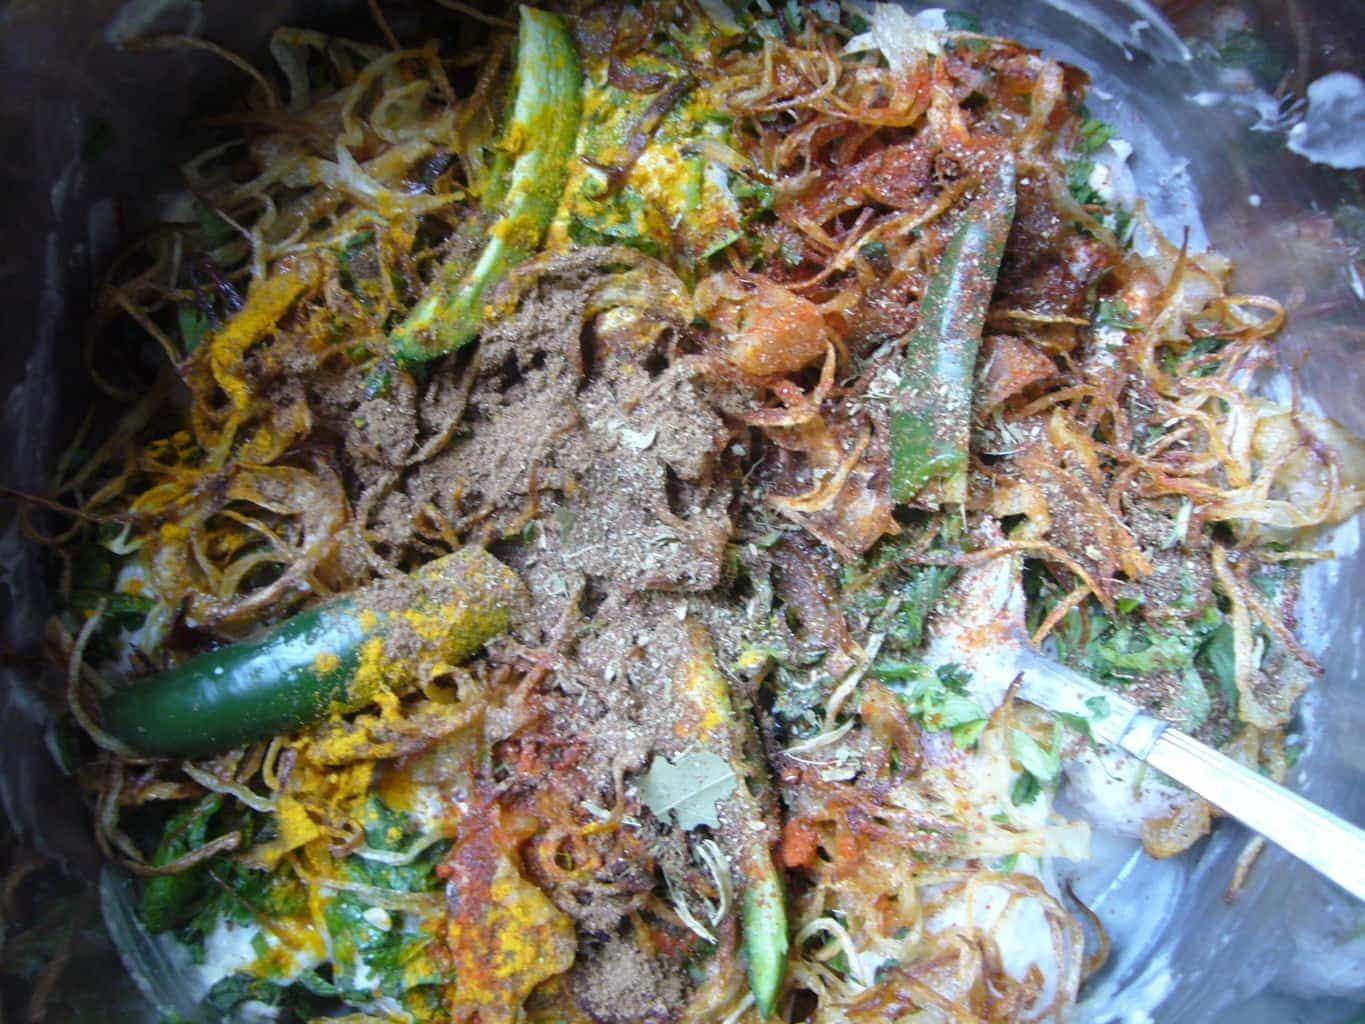 All the marinade ingredients, spices, herbs, chili peppers placed together for making the rice dish.